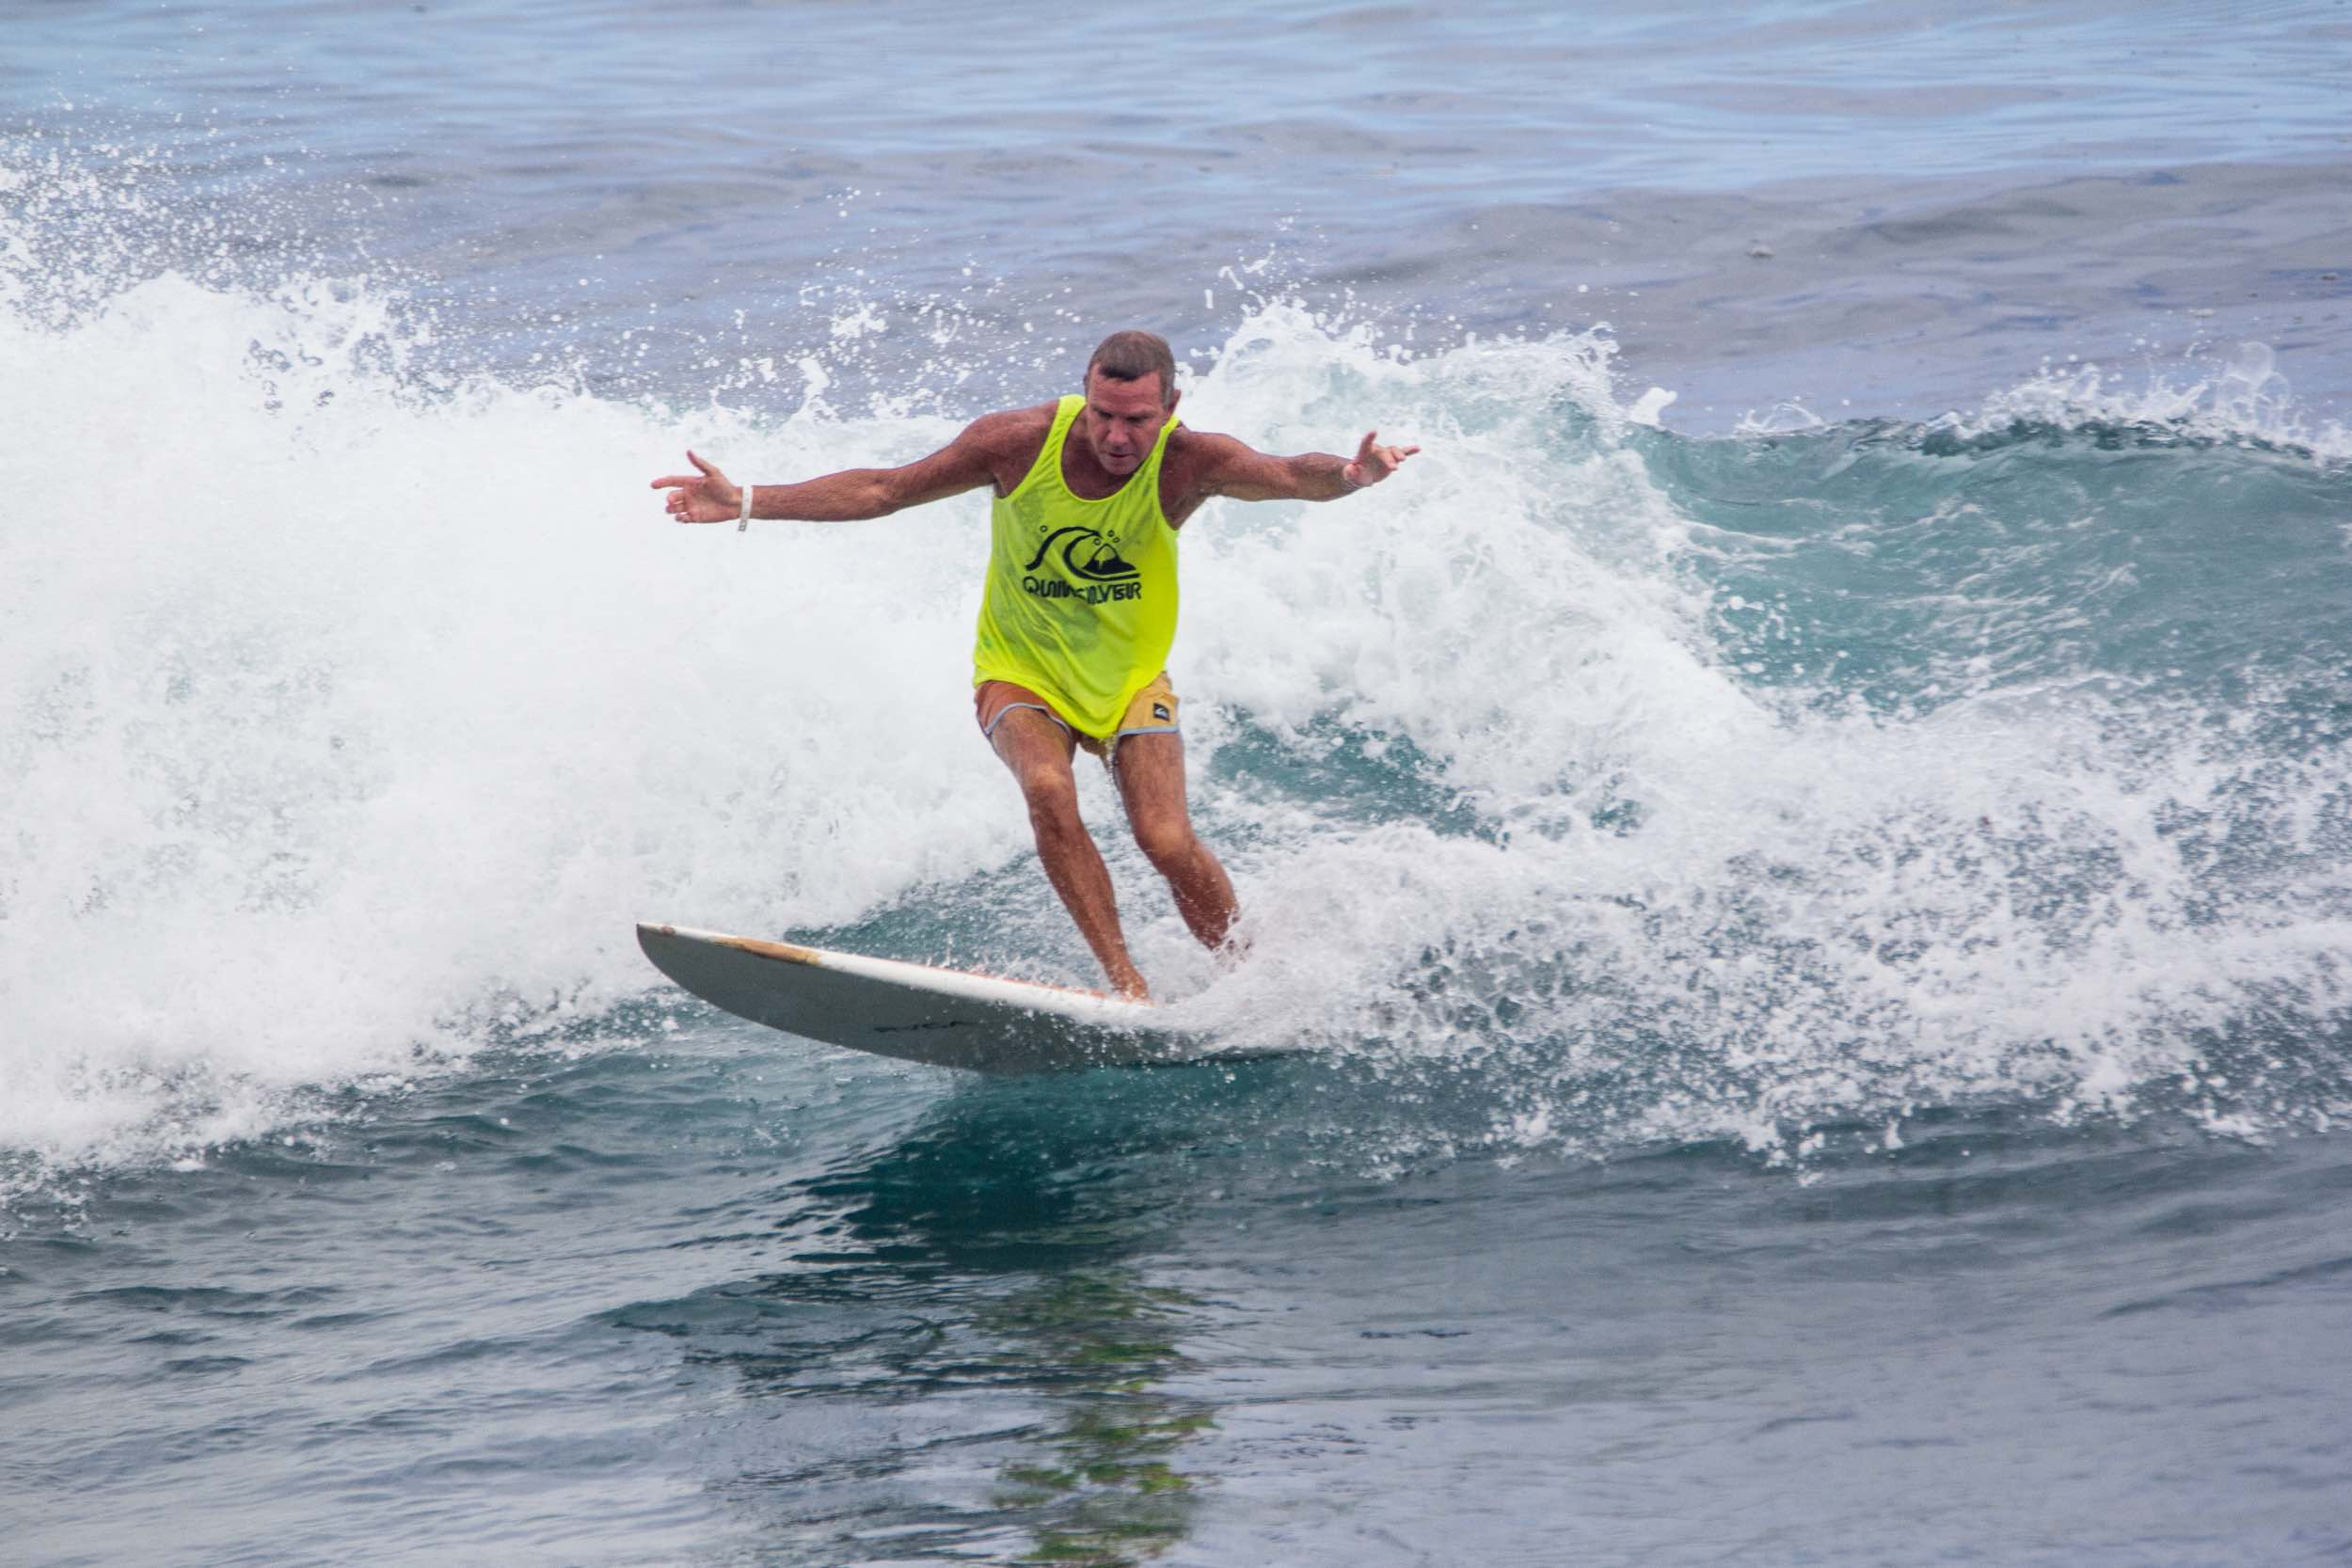 Grant Gilmore surfing his way to victory at the Quiksilver Off The Lip Movember Surf Jam